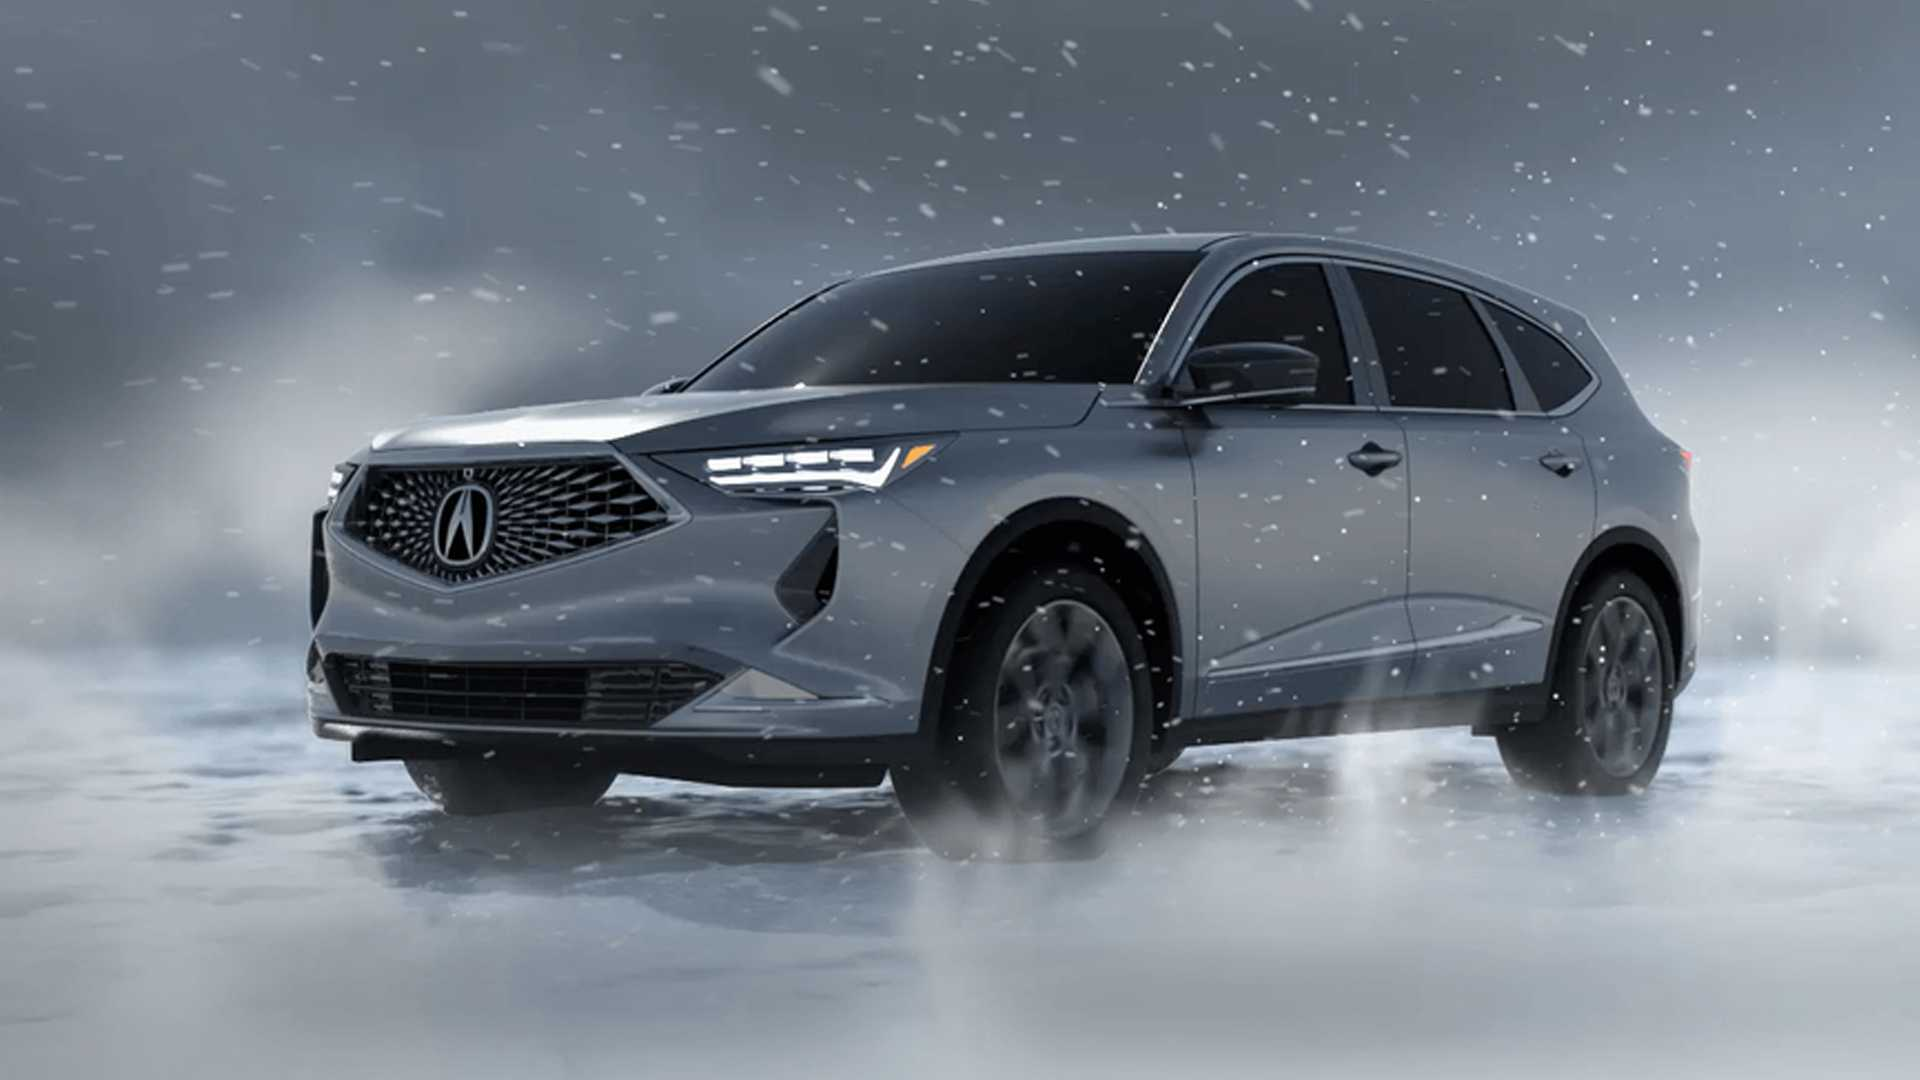 95 Best Acura Suv 2020 Review